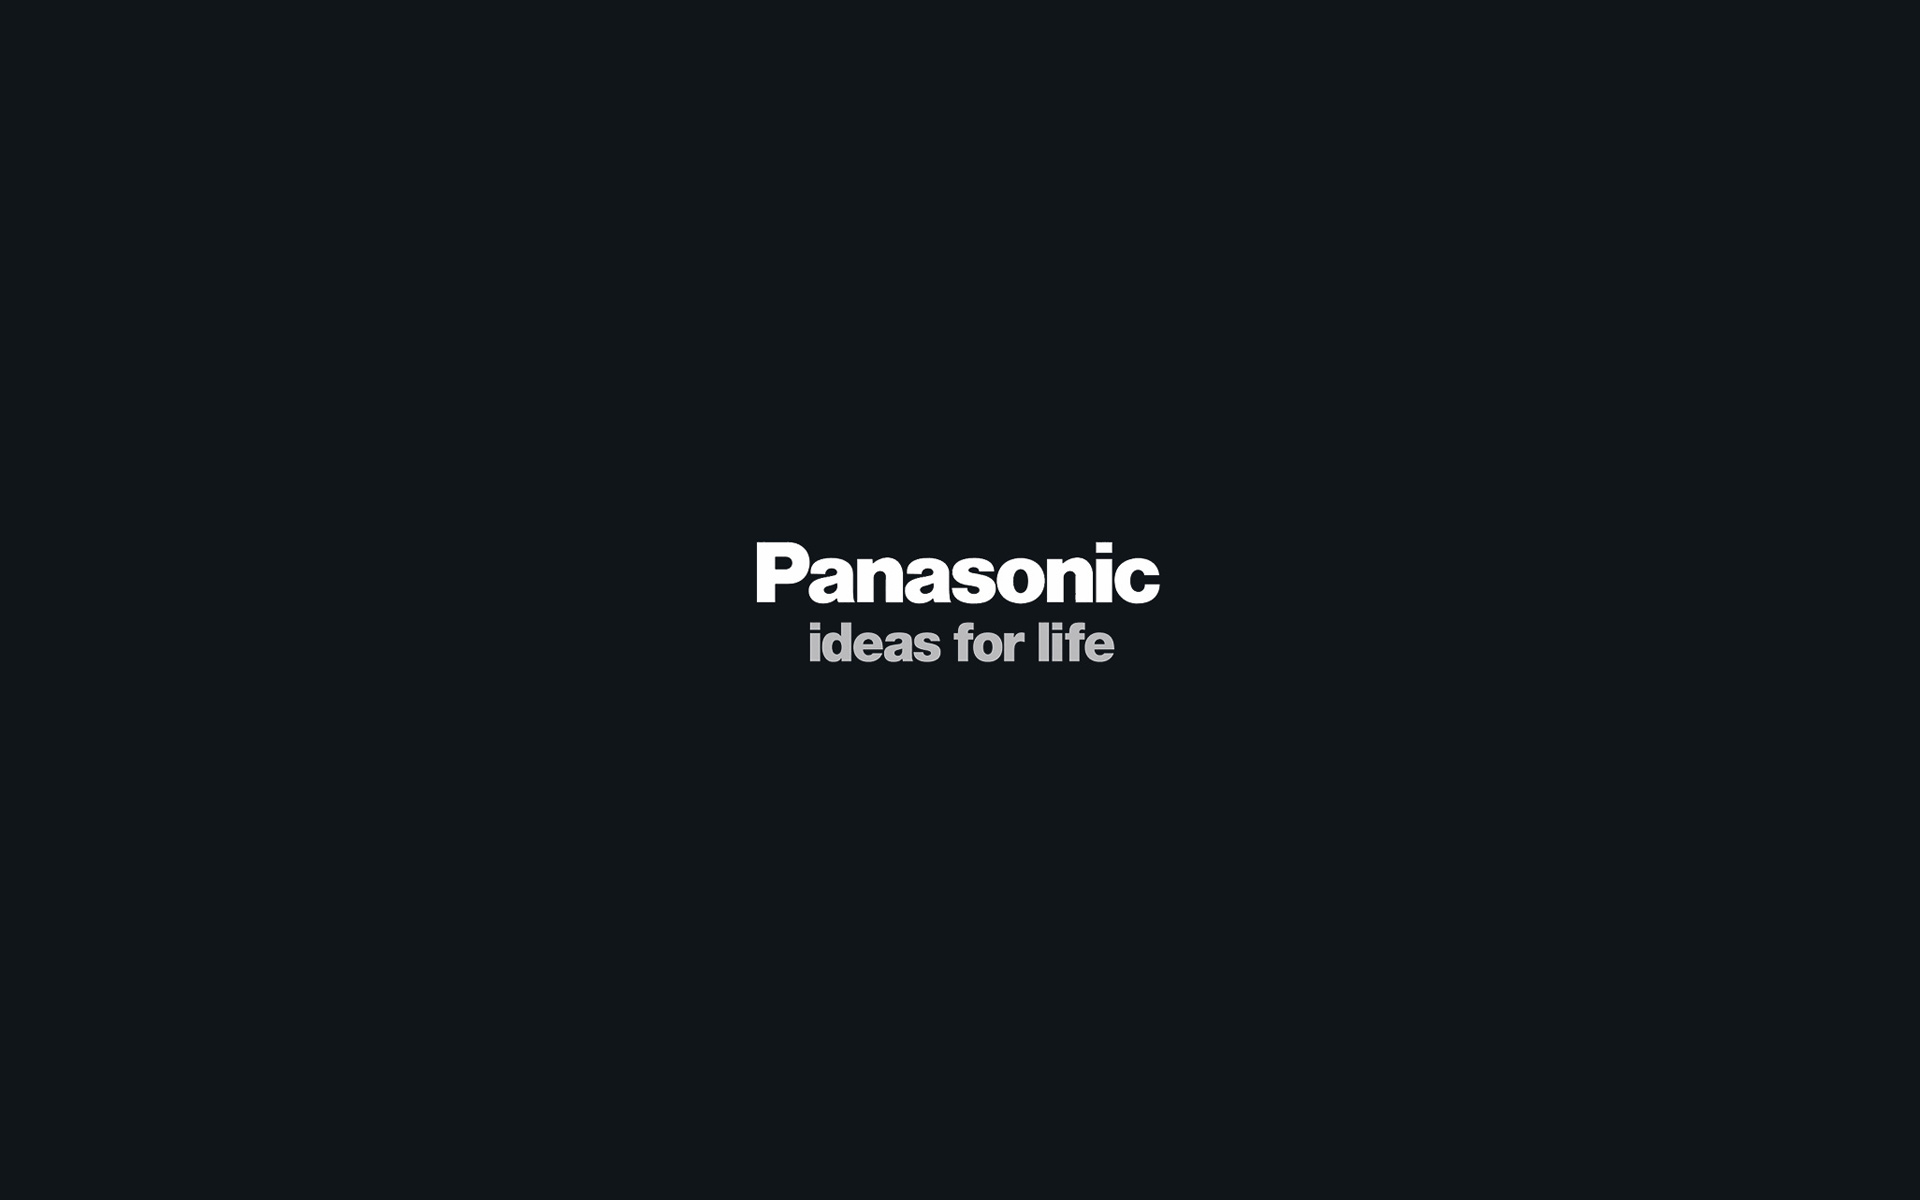 Online community for Panasonic.